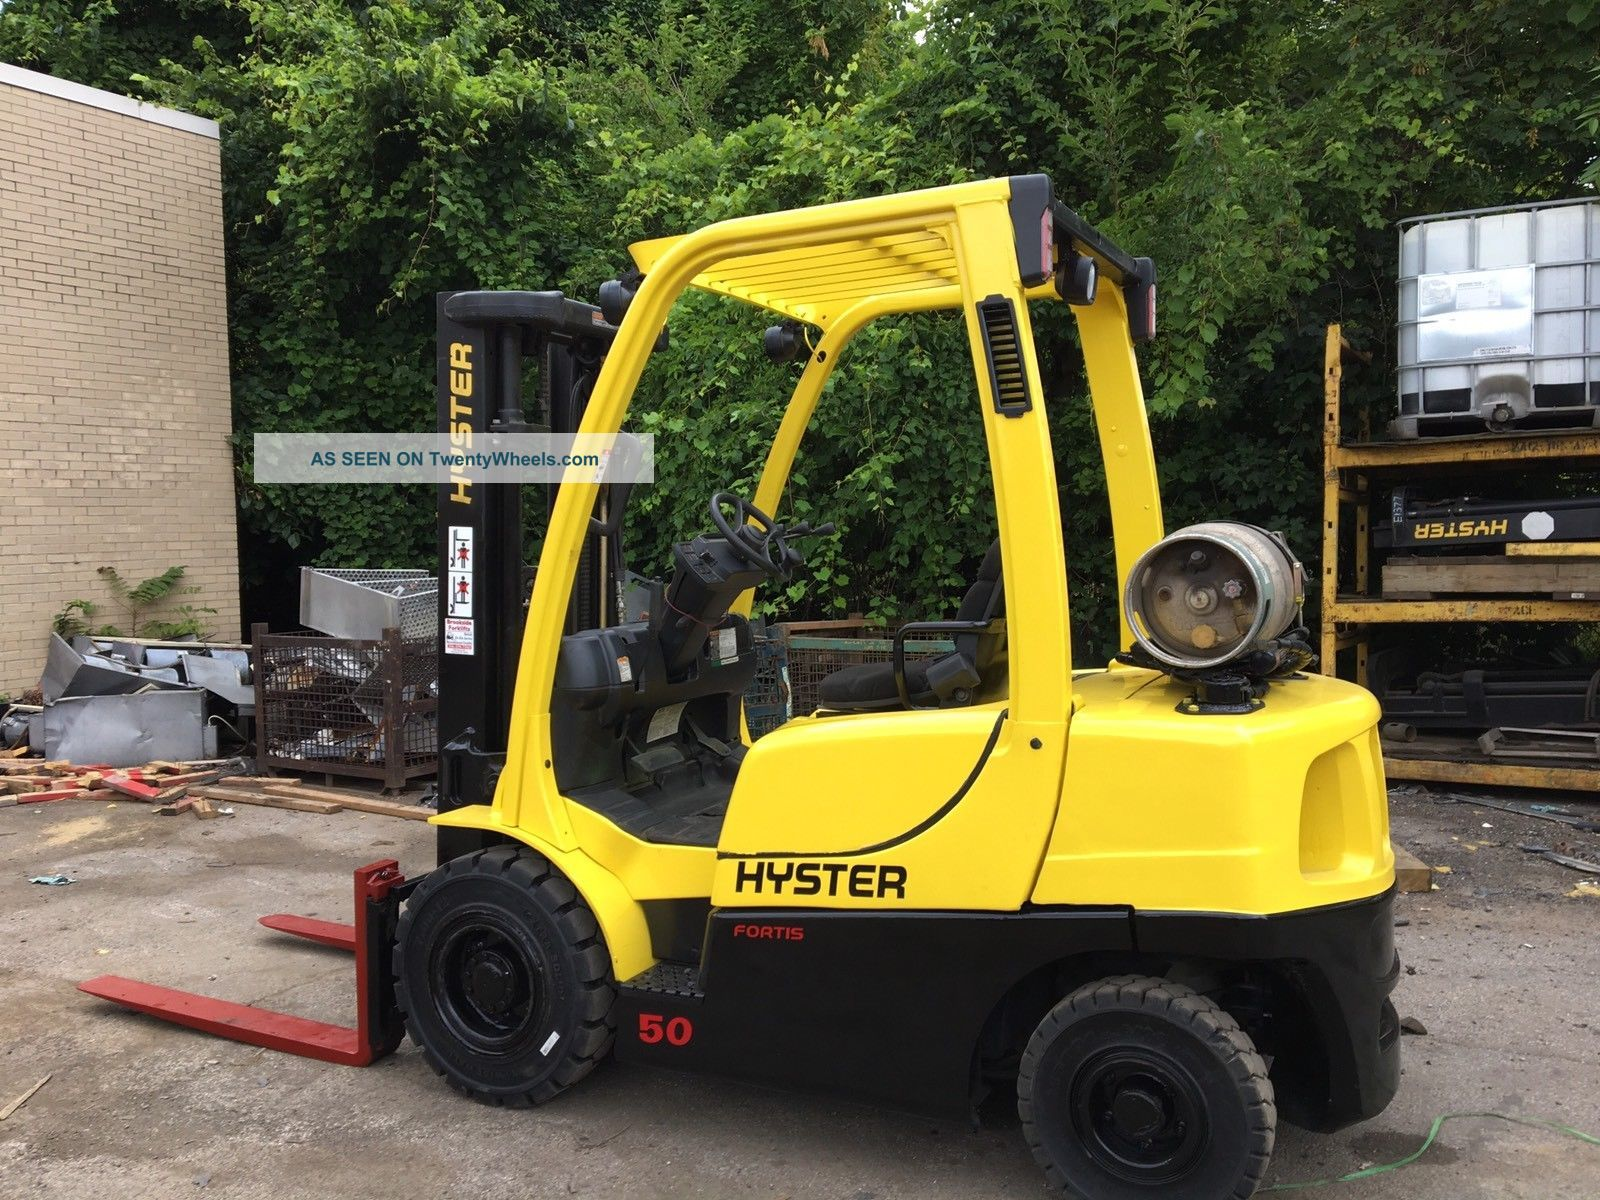 2011 Hyster 5000 Lb Pneumatic Forklift With Sideshift Triple Mast Rental Specs Forklifts photo